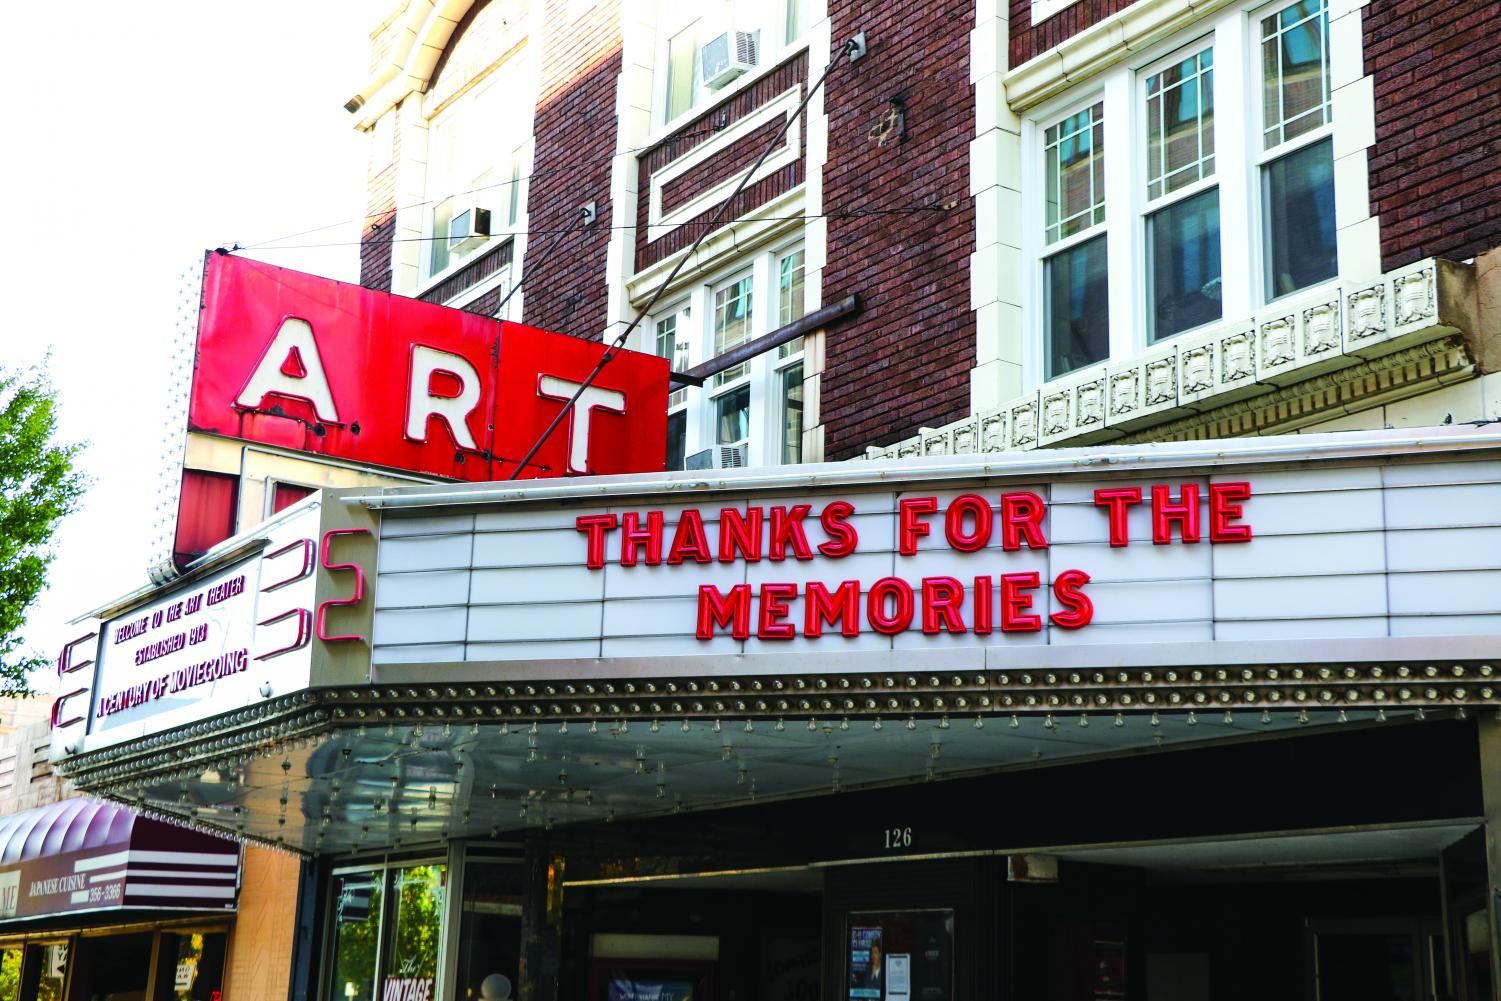 The Art Theater is located in Champaign and officially closed its doors Nov. 1. The Art Film Foundation filed for bankruptcy on Tuesday.